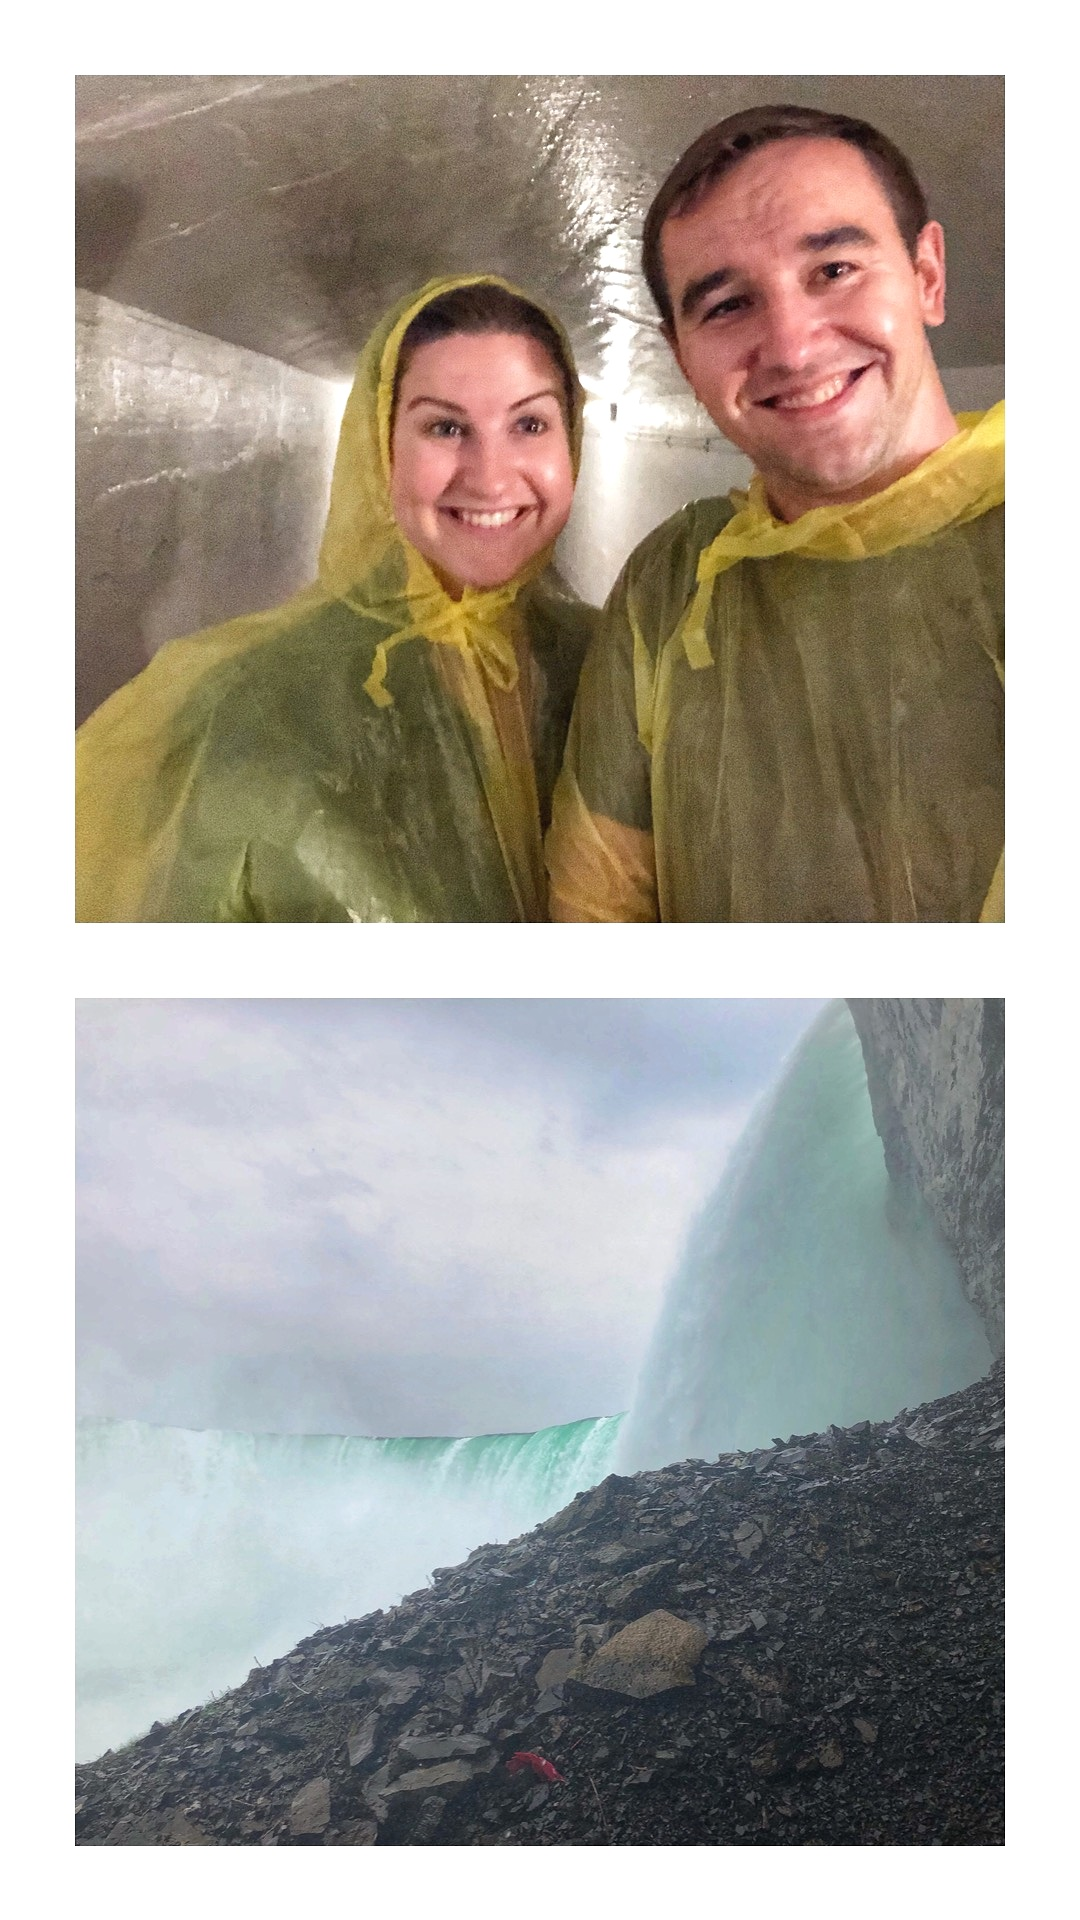 We loved our Journey Behind the Falls as part of our Niagara Falls adventure